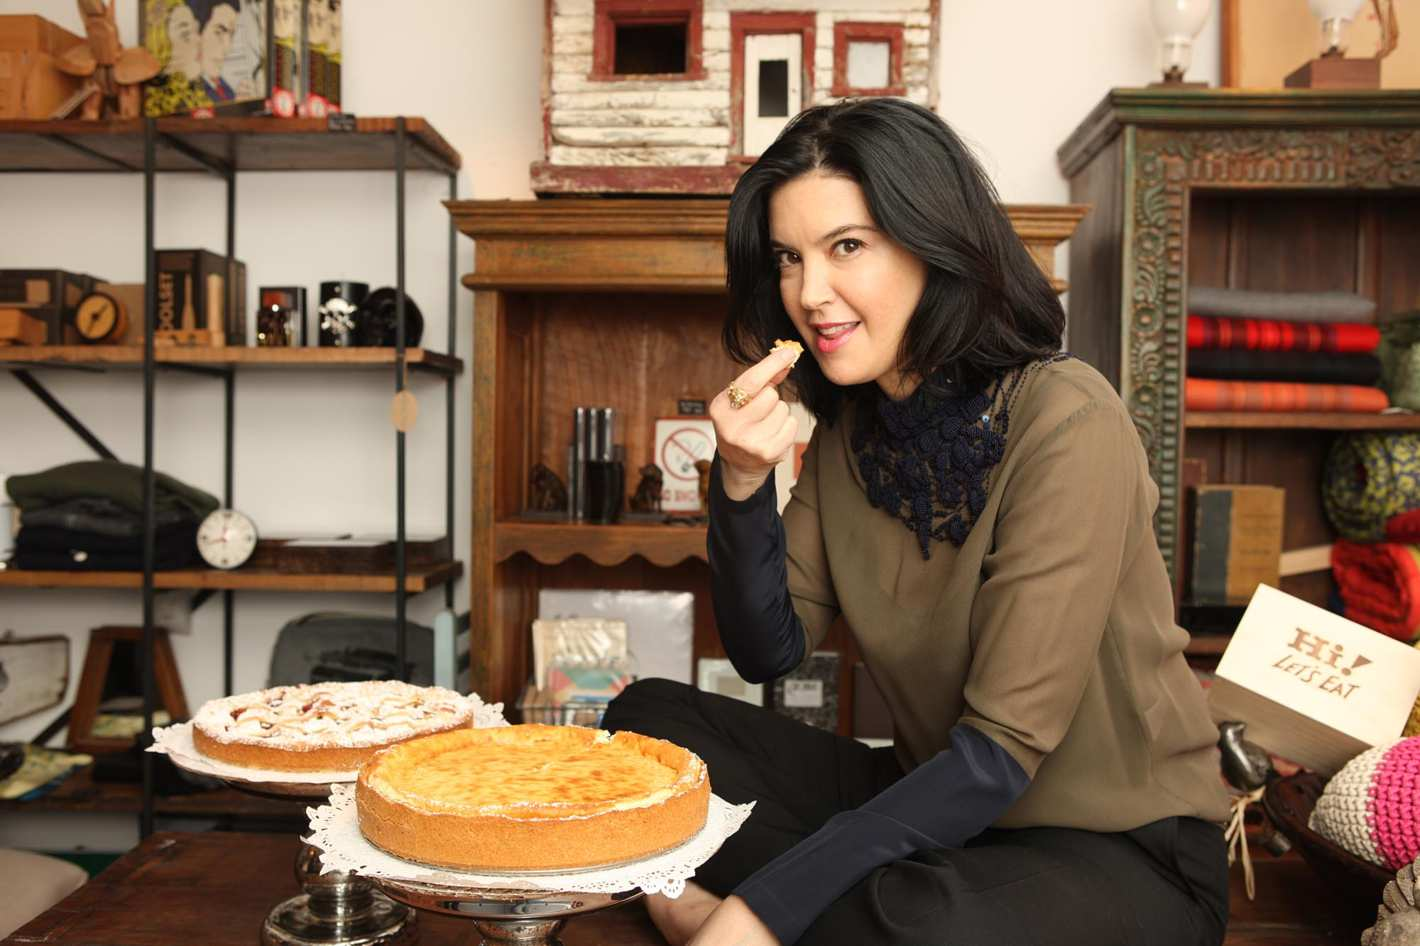 Phoebe eating a pie at her boutique